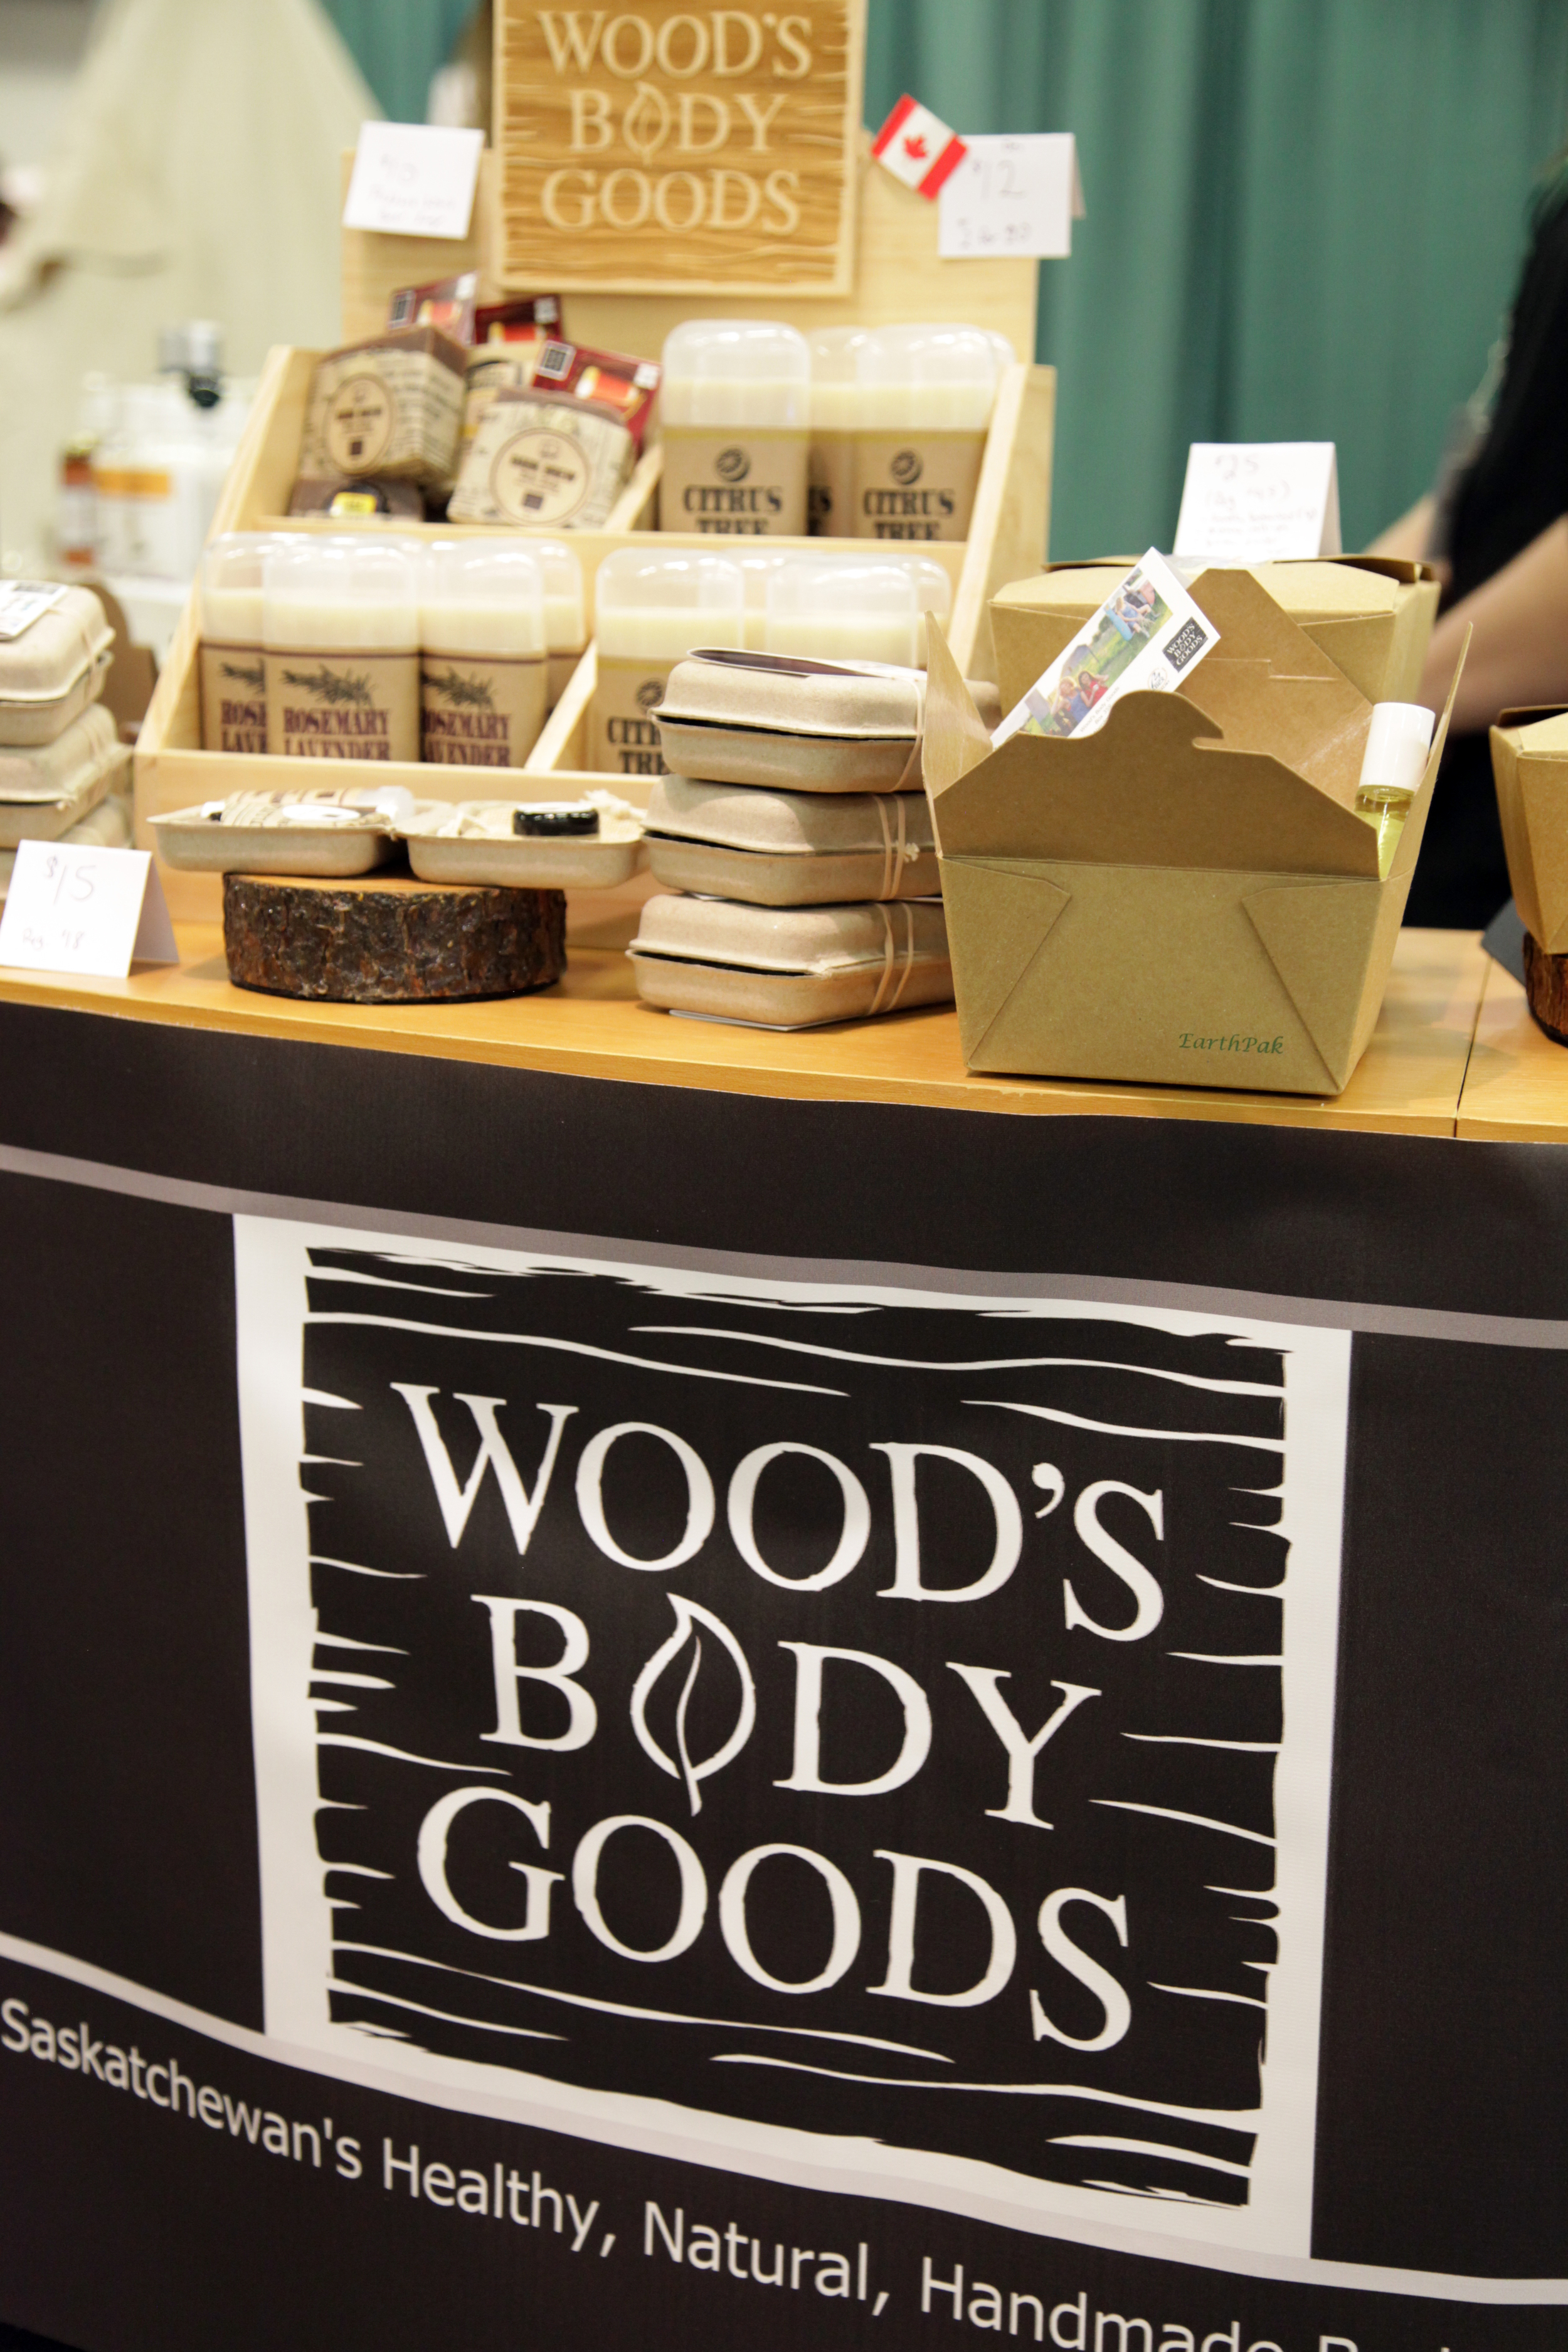 wood's body goods 2.jpg